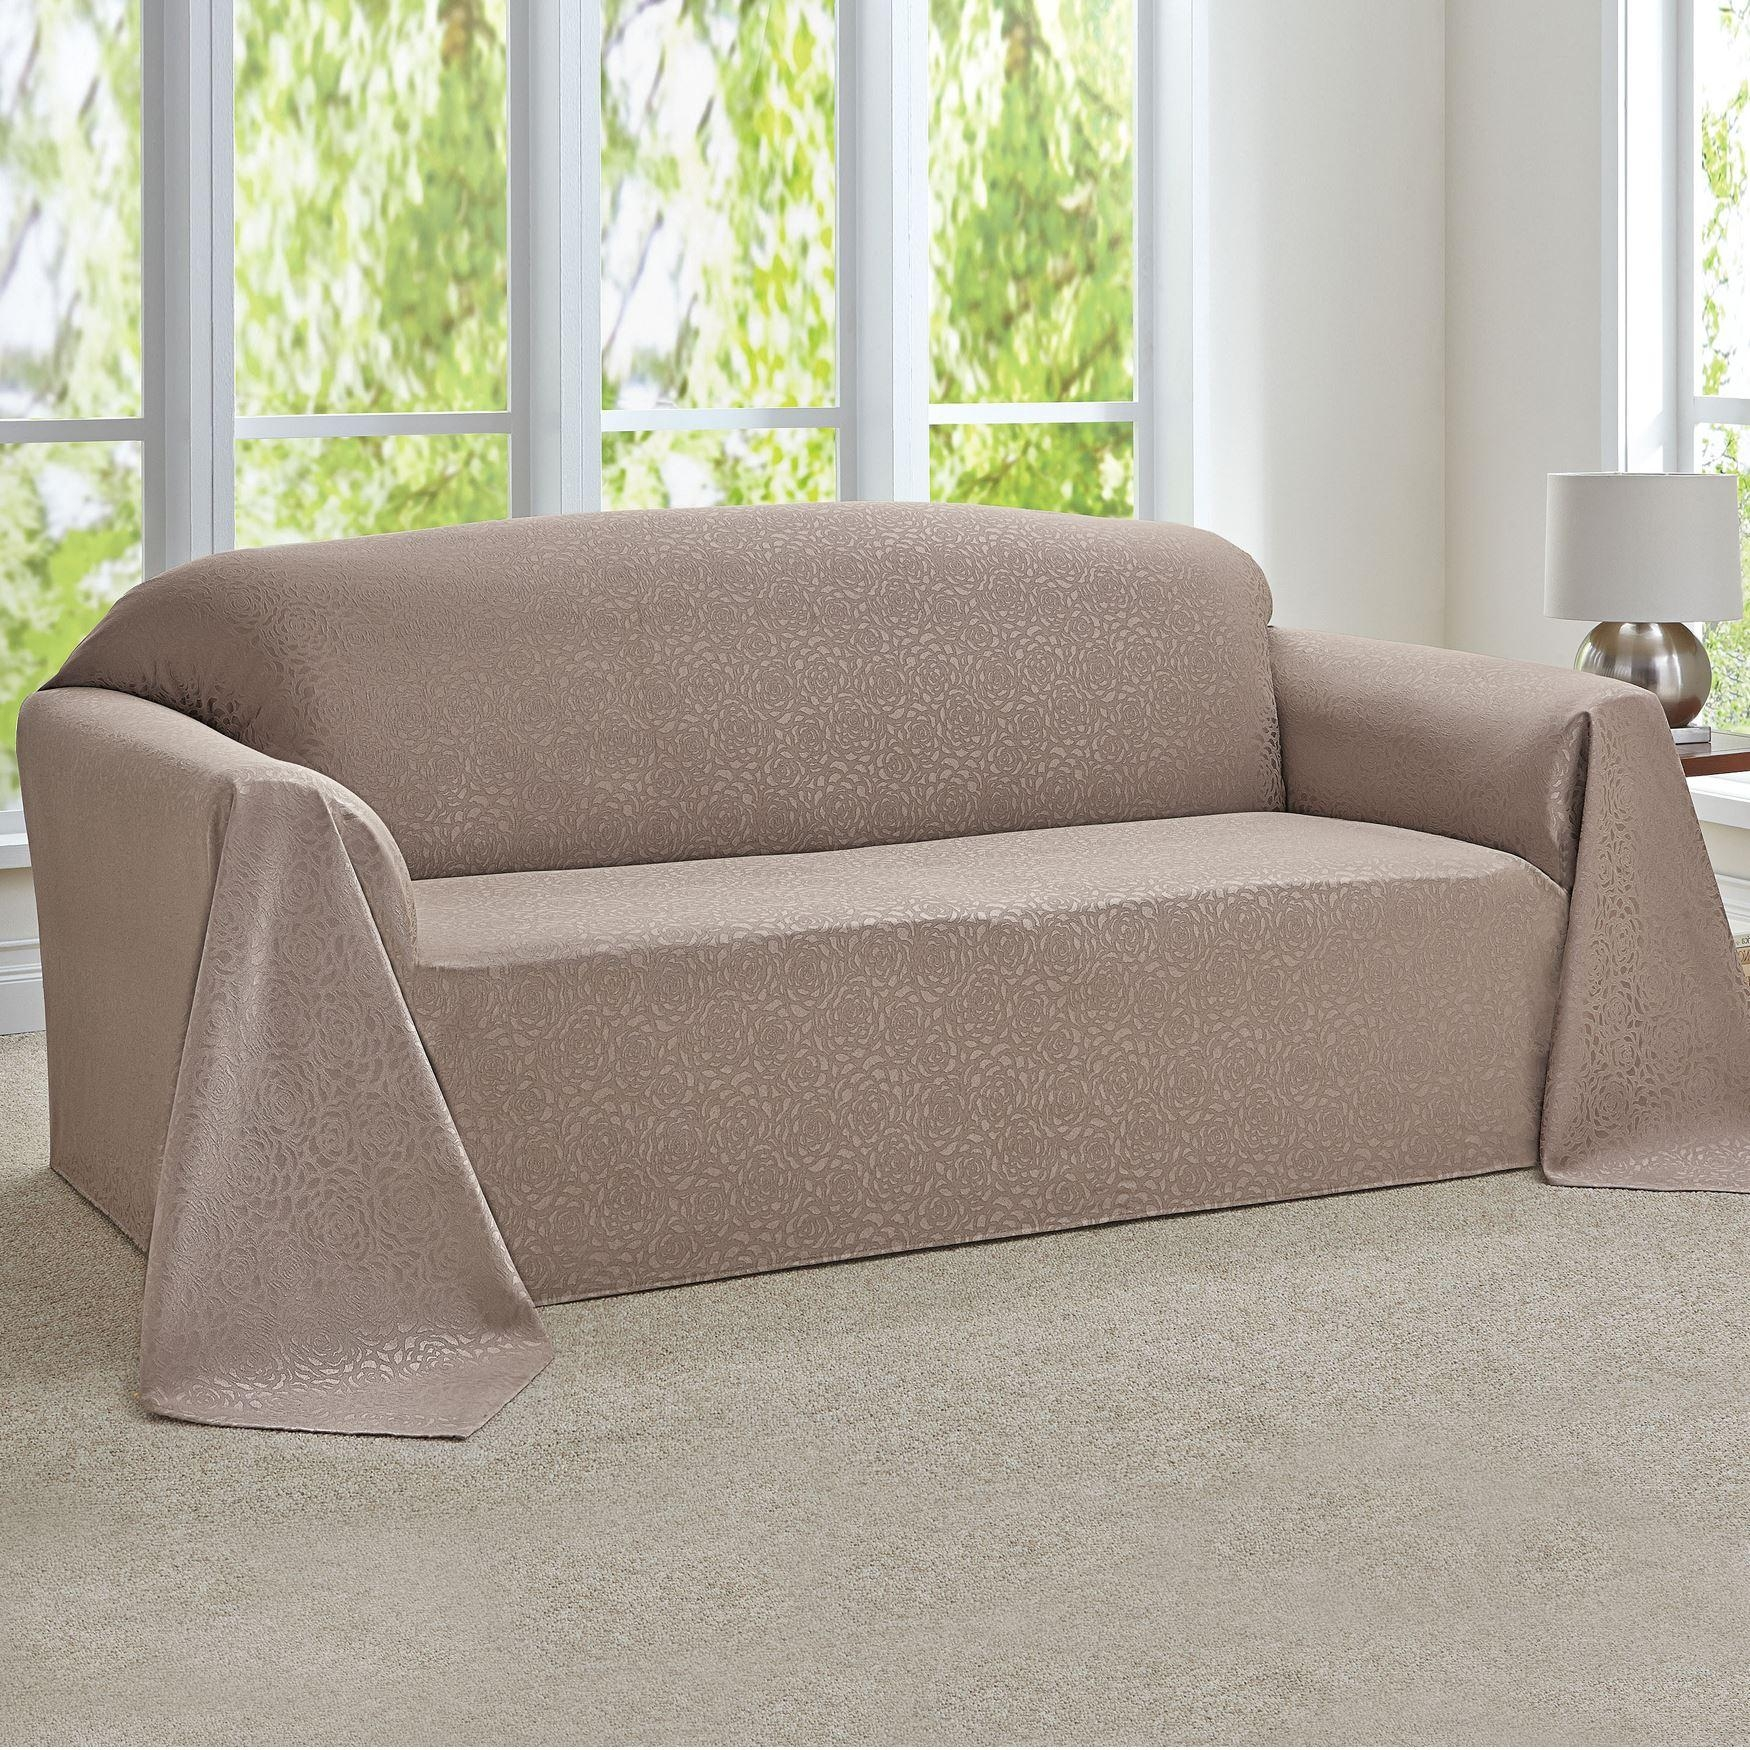 Sofas : Amazing Settee Covers Slip Covers For Sofa Sectional Sofa Throughout Sofa Settee Covers (View 7 of 22)